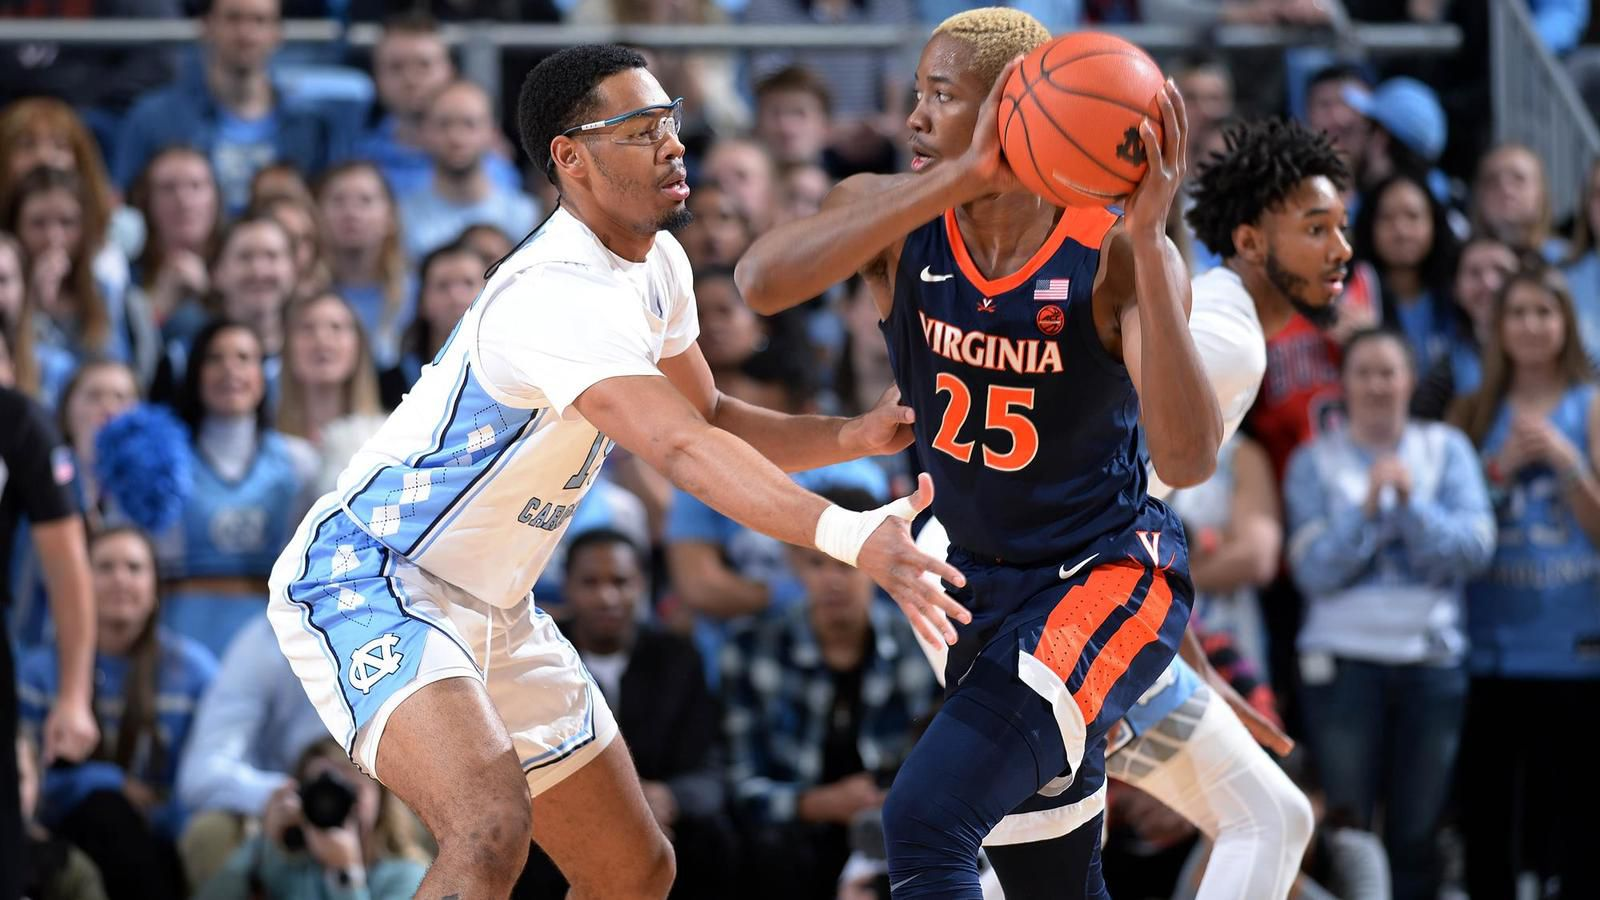 NCAA : Virginia terrasse le North Carolina au terme d'un money-time exceptionnel